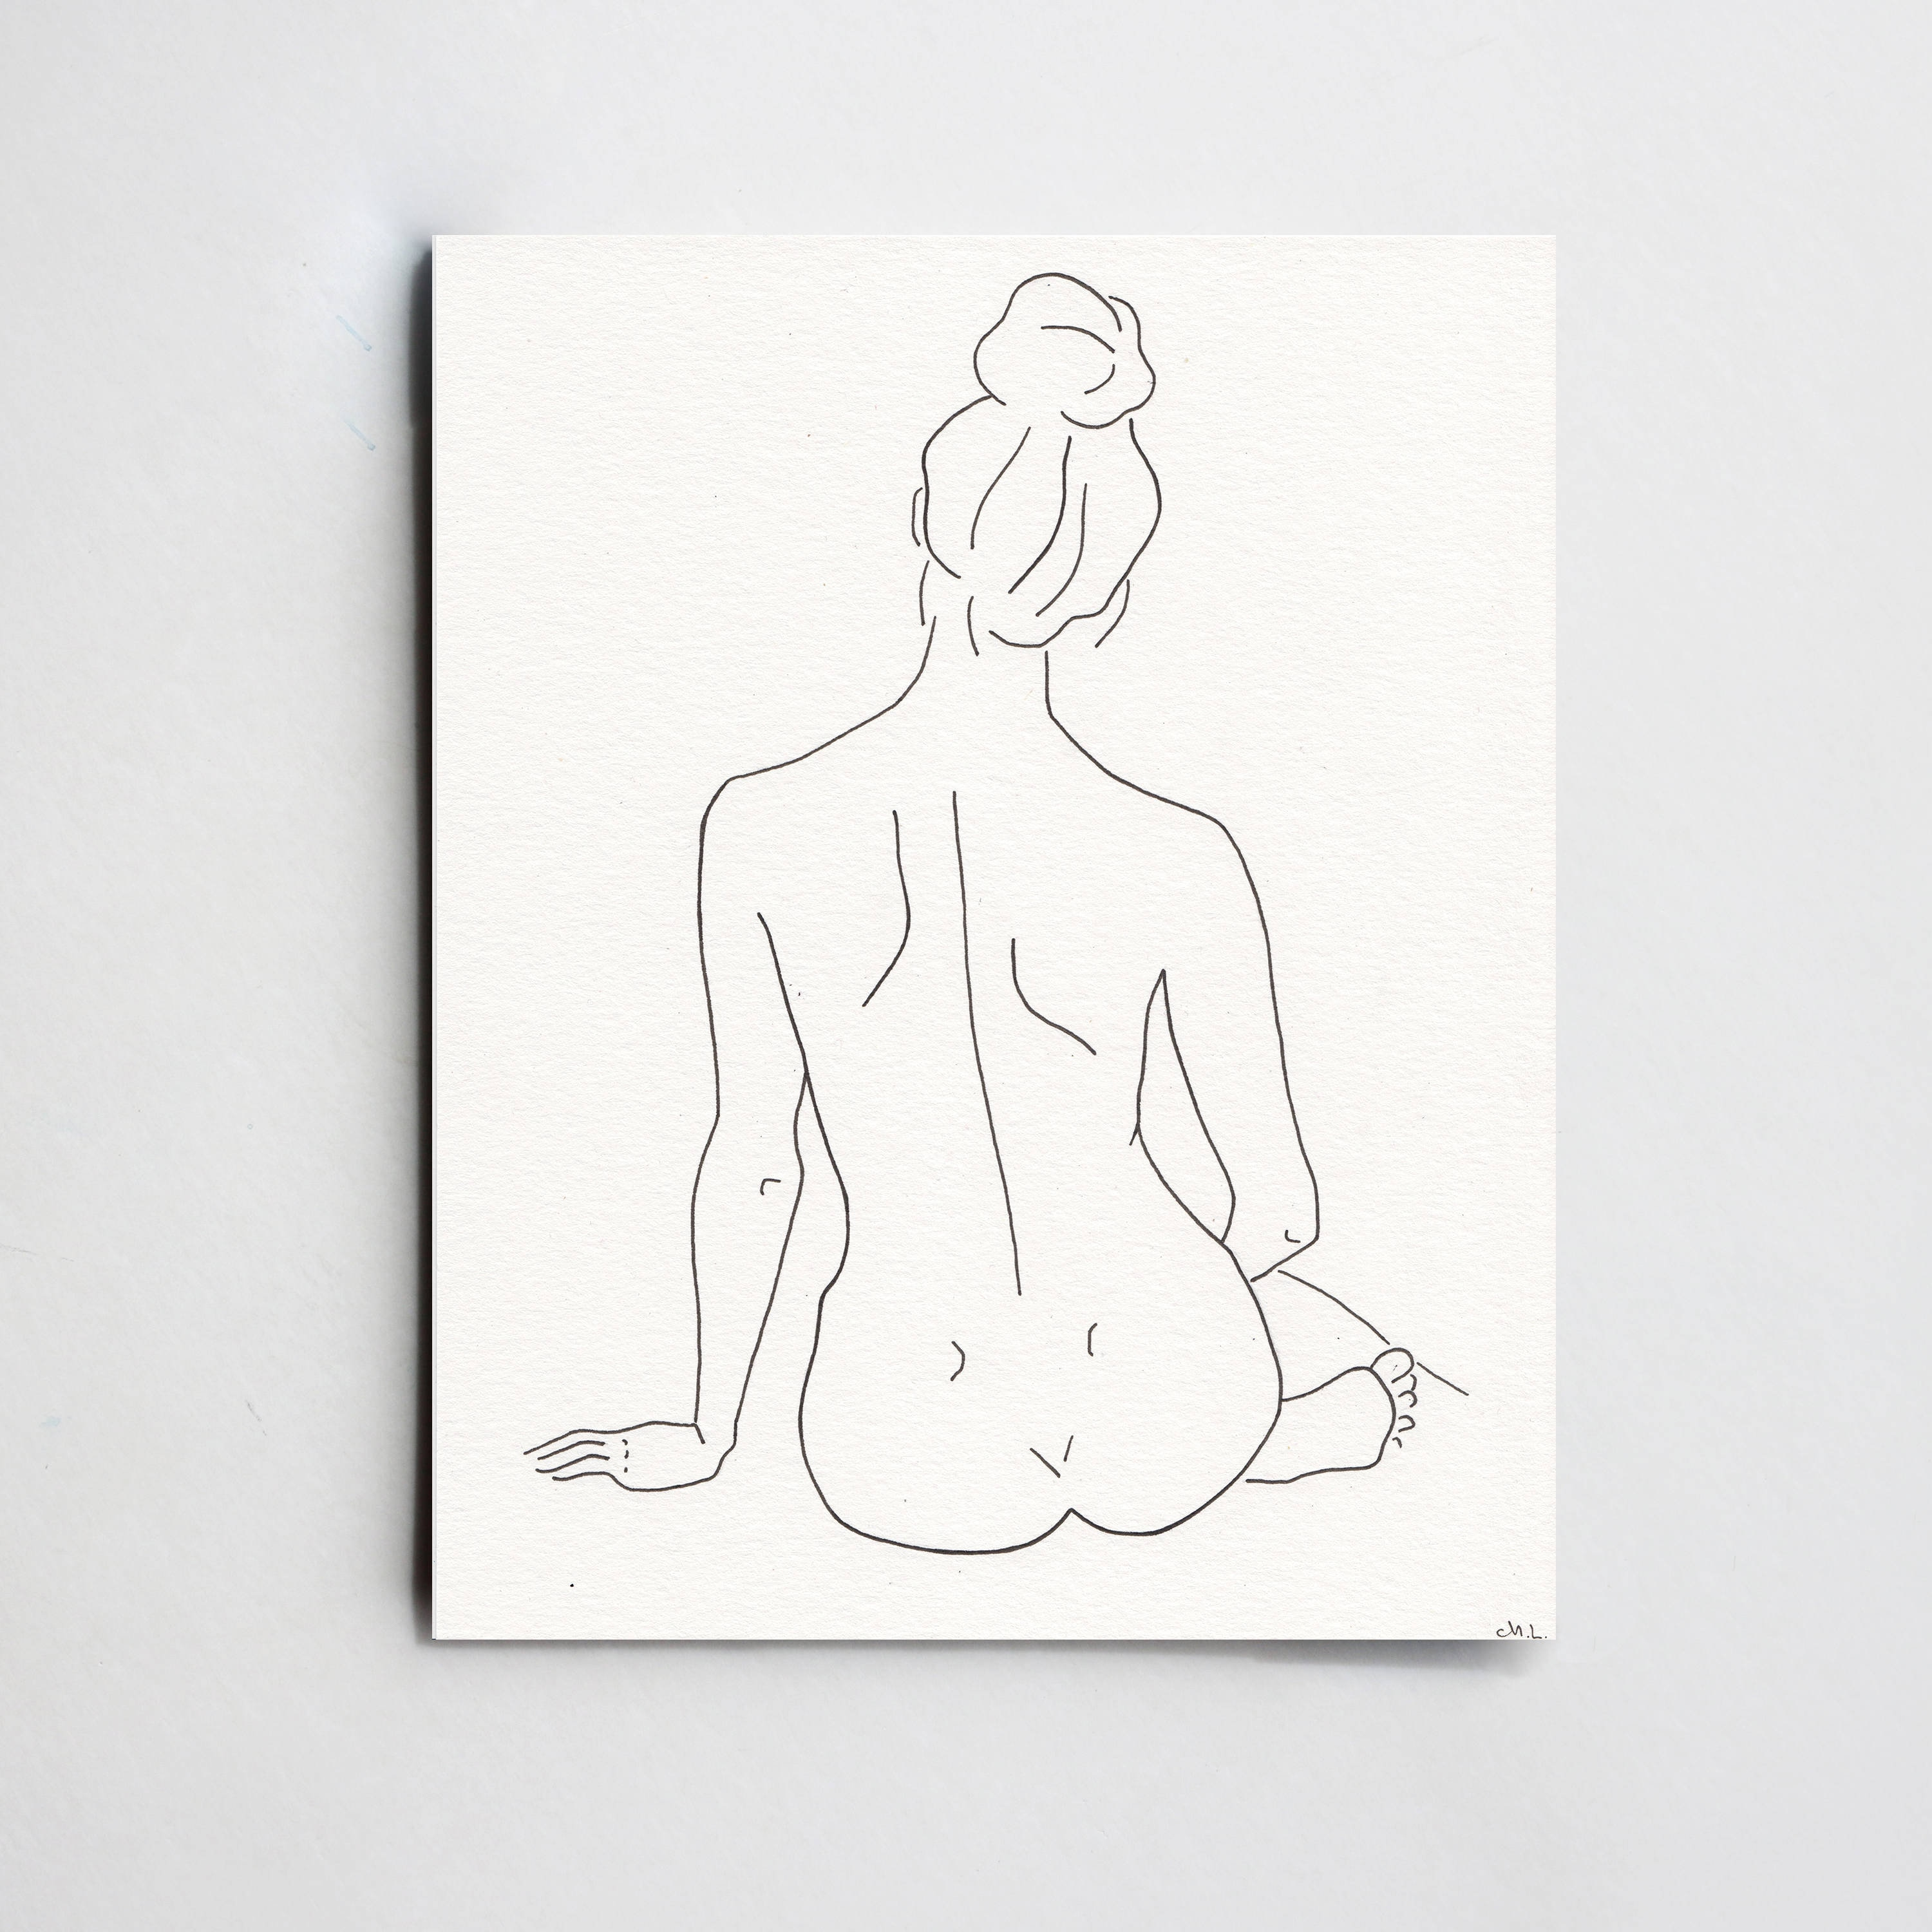 Black nude woman silhouette Simple Woman Silhouette Art Minimalistic Line Drawing Woman Etsy